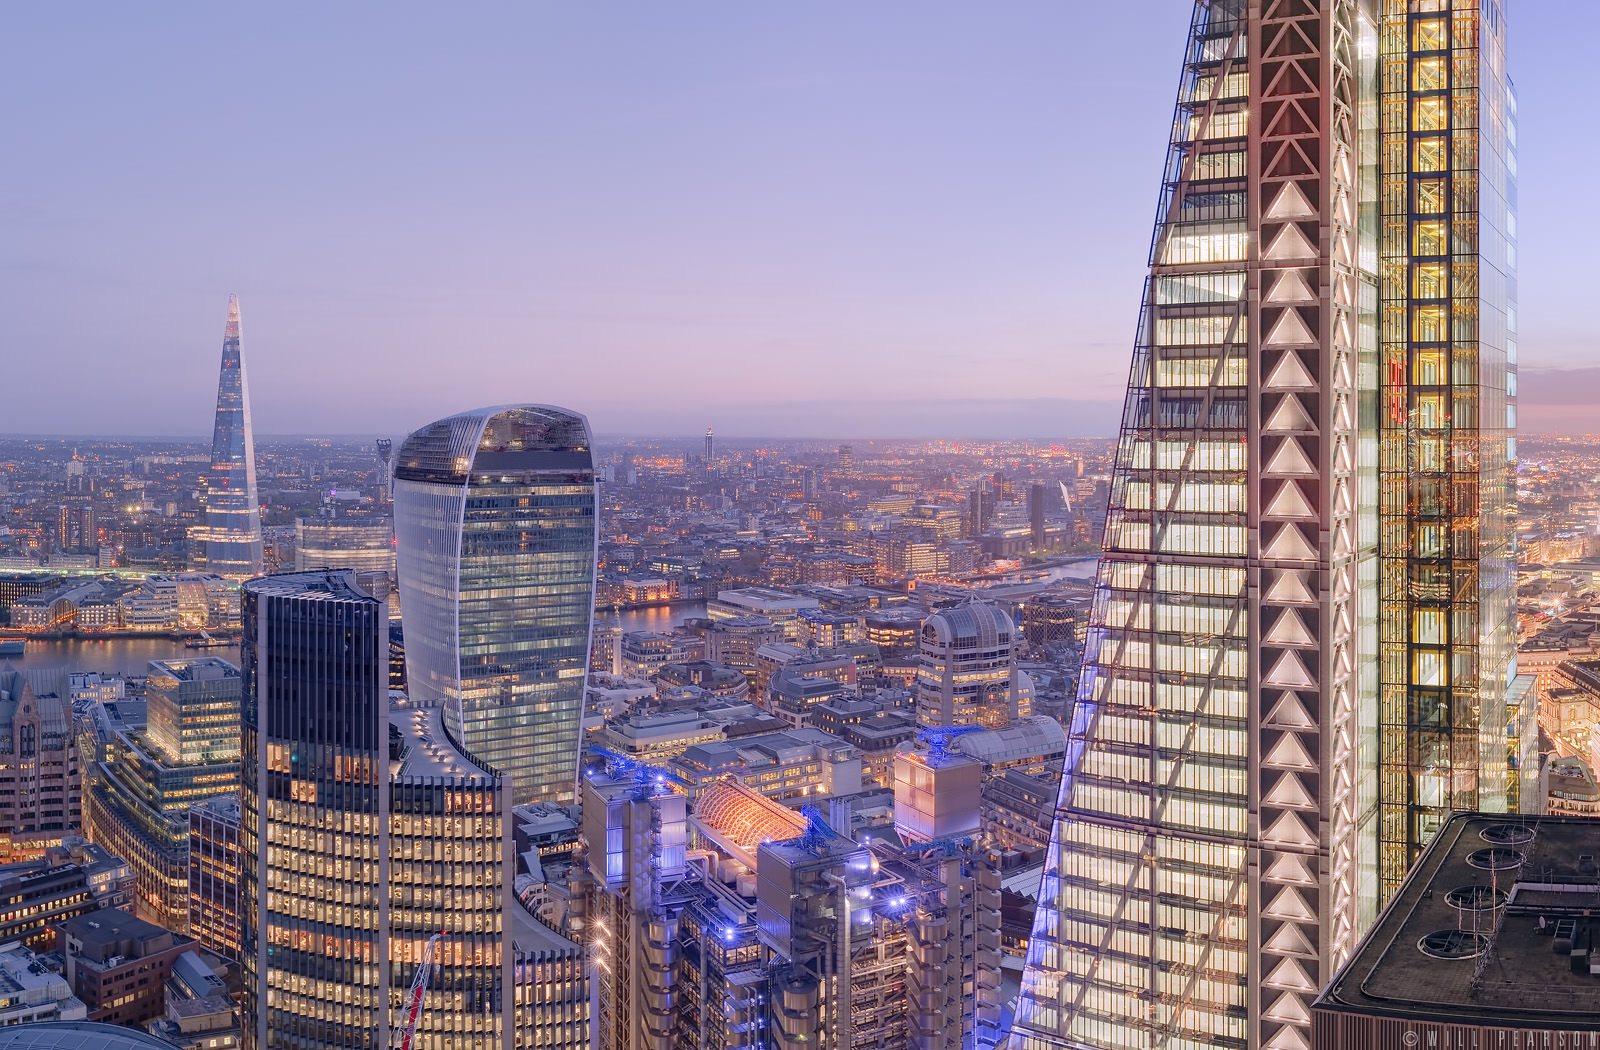 30 St Mary Axe 360 Panorama, Dawn to Dusk